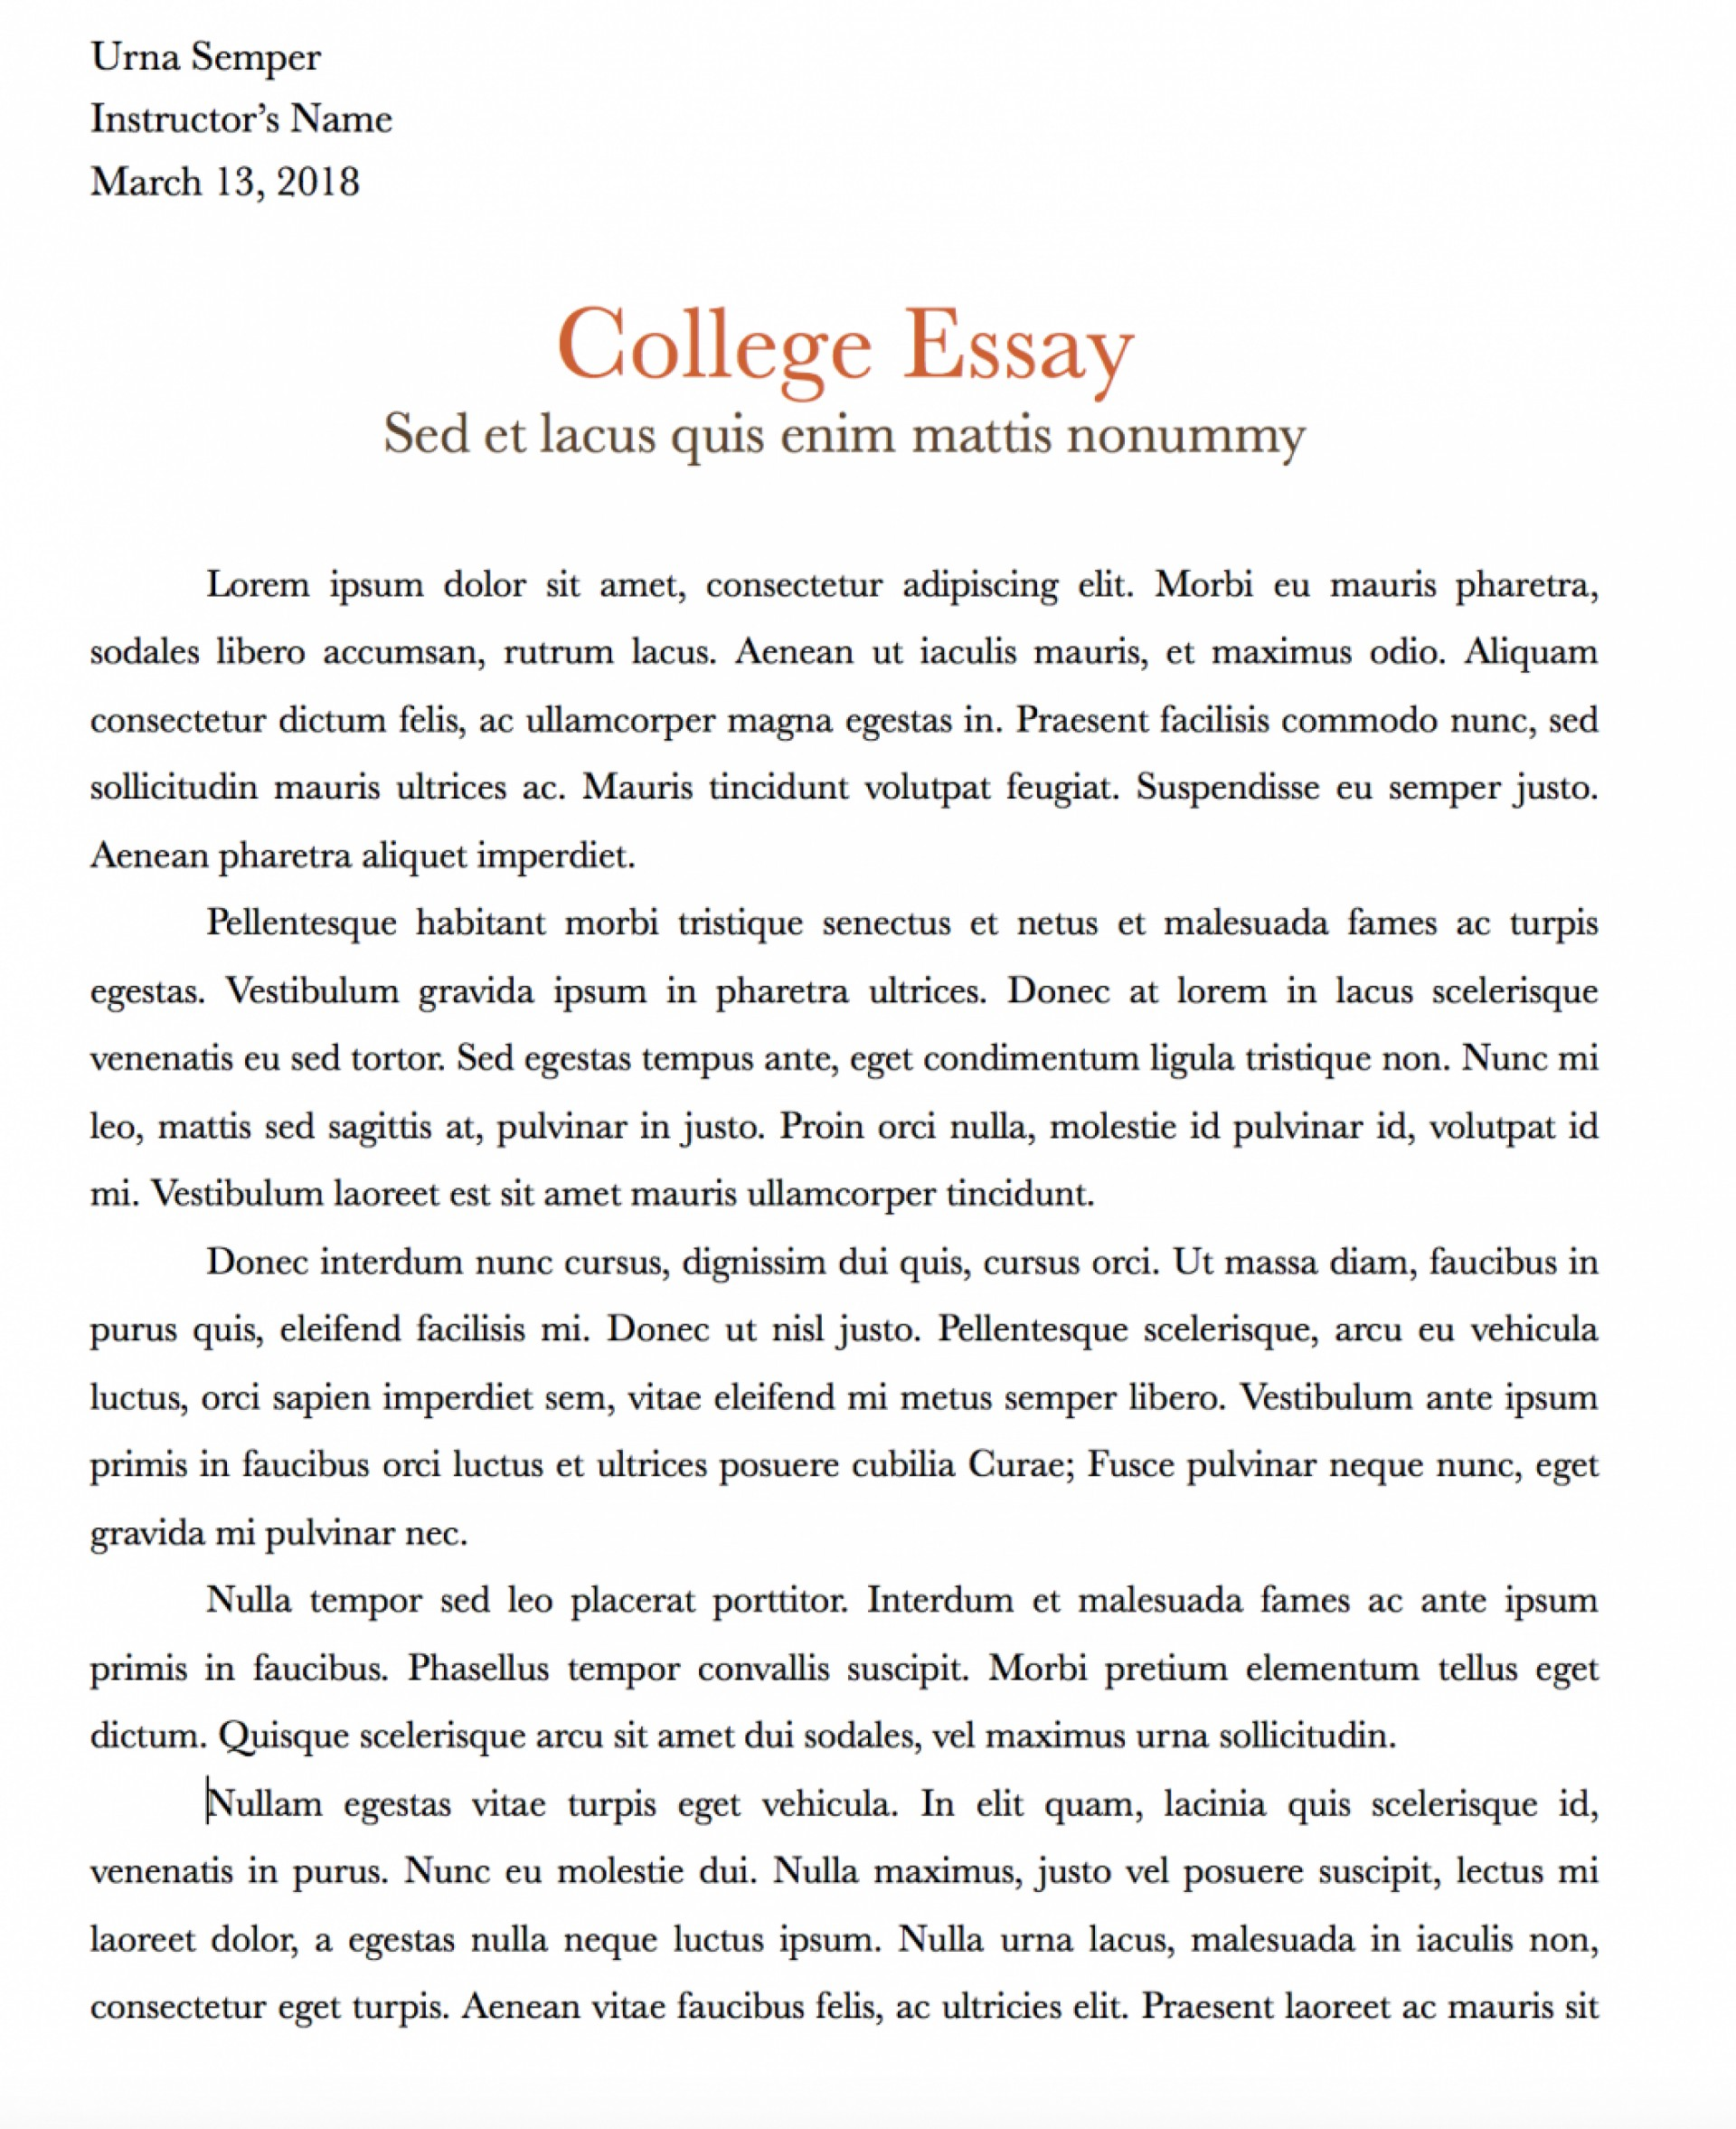 002 Essay Example How To Start Off An Write Interesting And Captivating College Examples Ctwrvkoshcimzkxyhyl8 With Parag Scholarship About Yourself Excellent Introduction A Narrative Good Your Life 1920